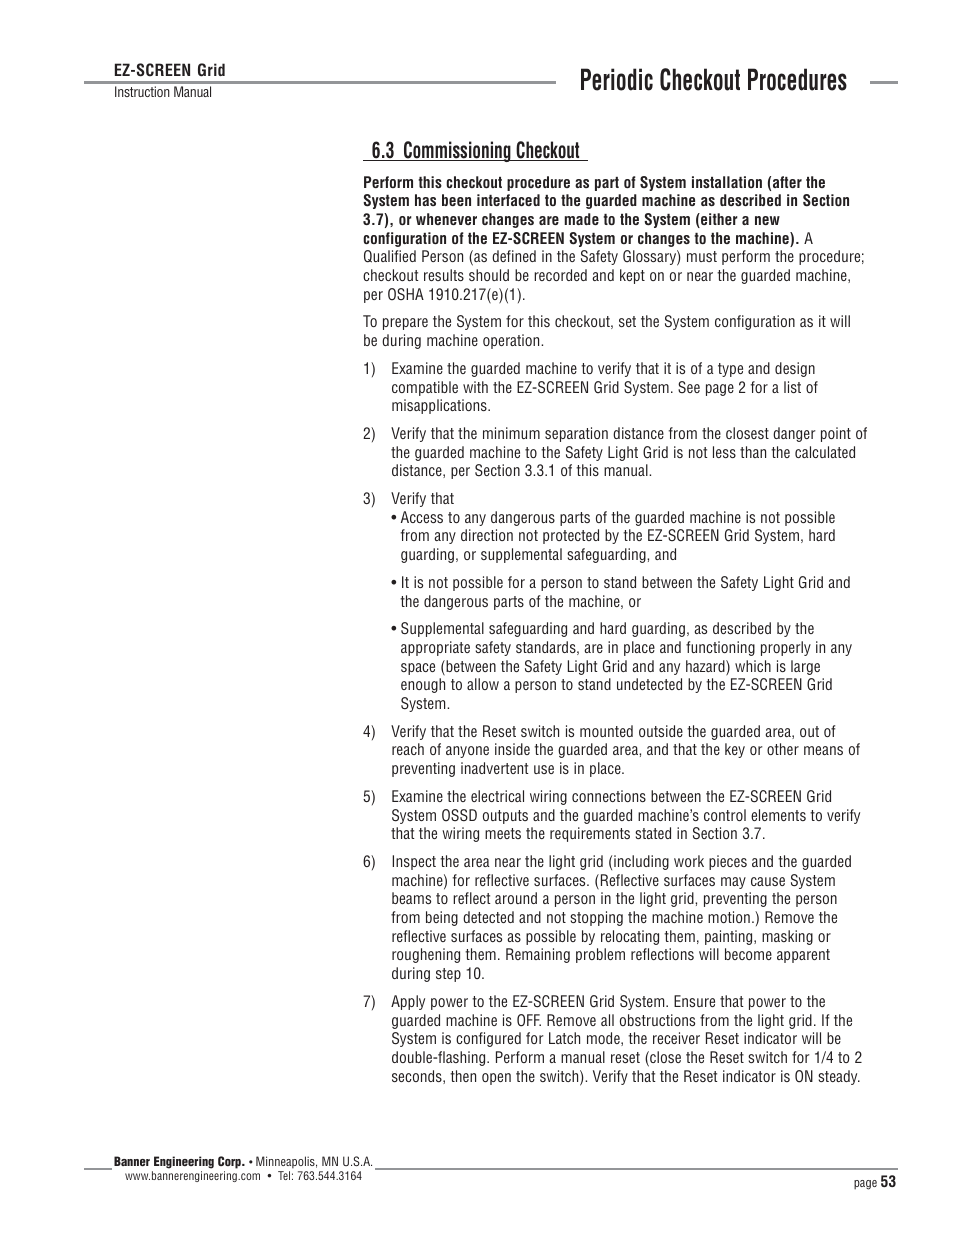 Periodic Checkout Procedures  3 Commissioning Checkout